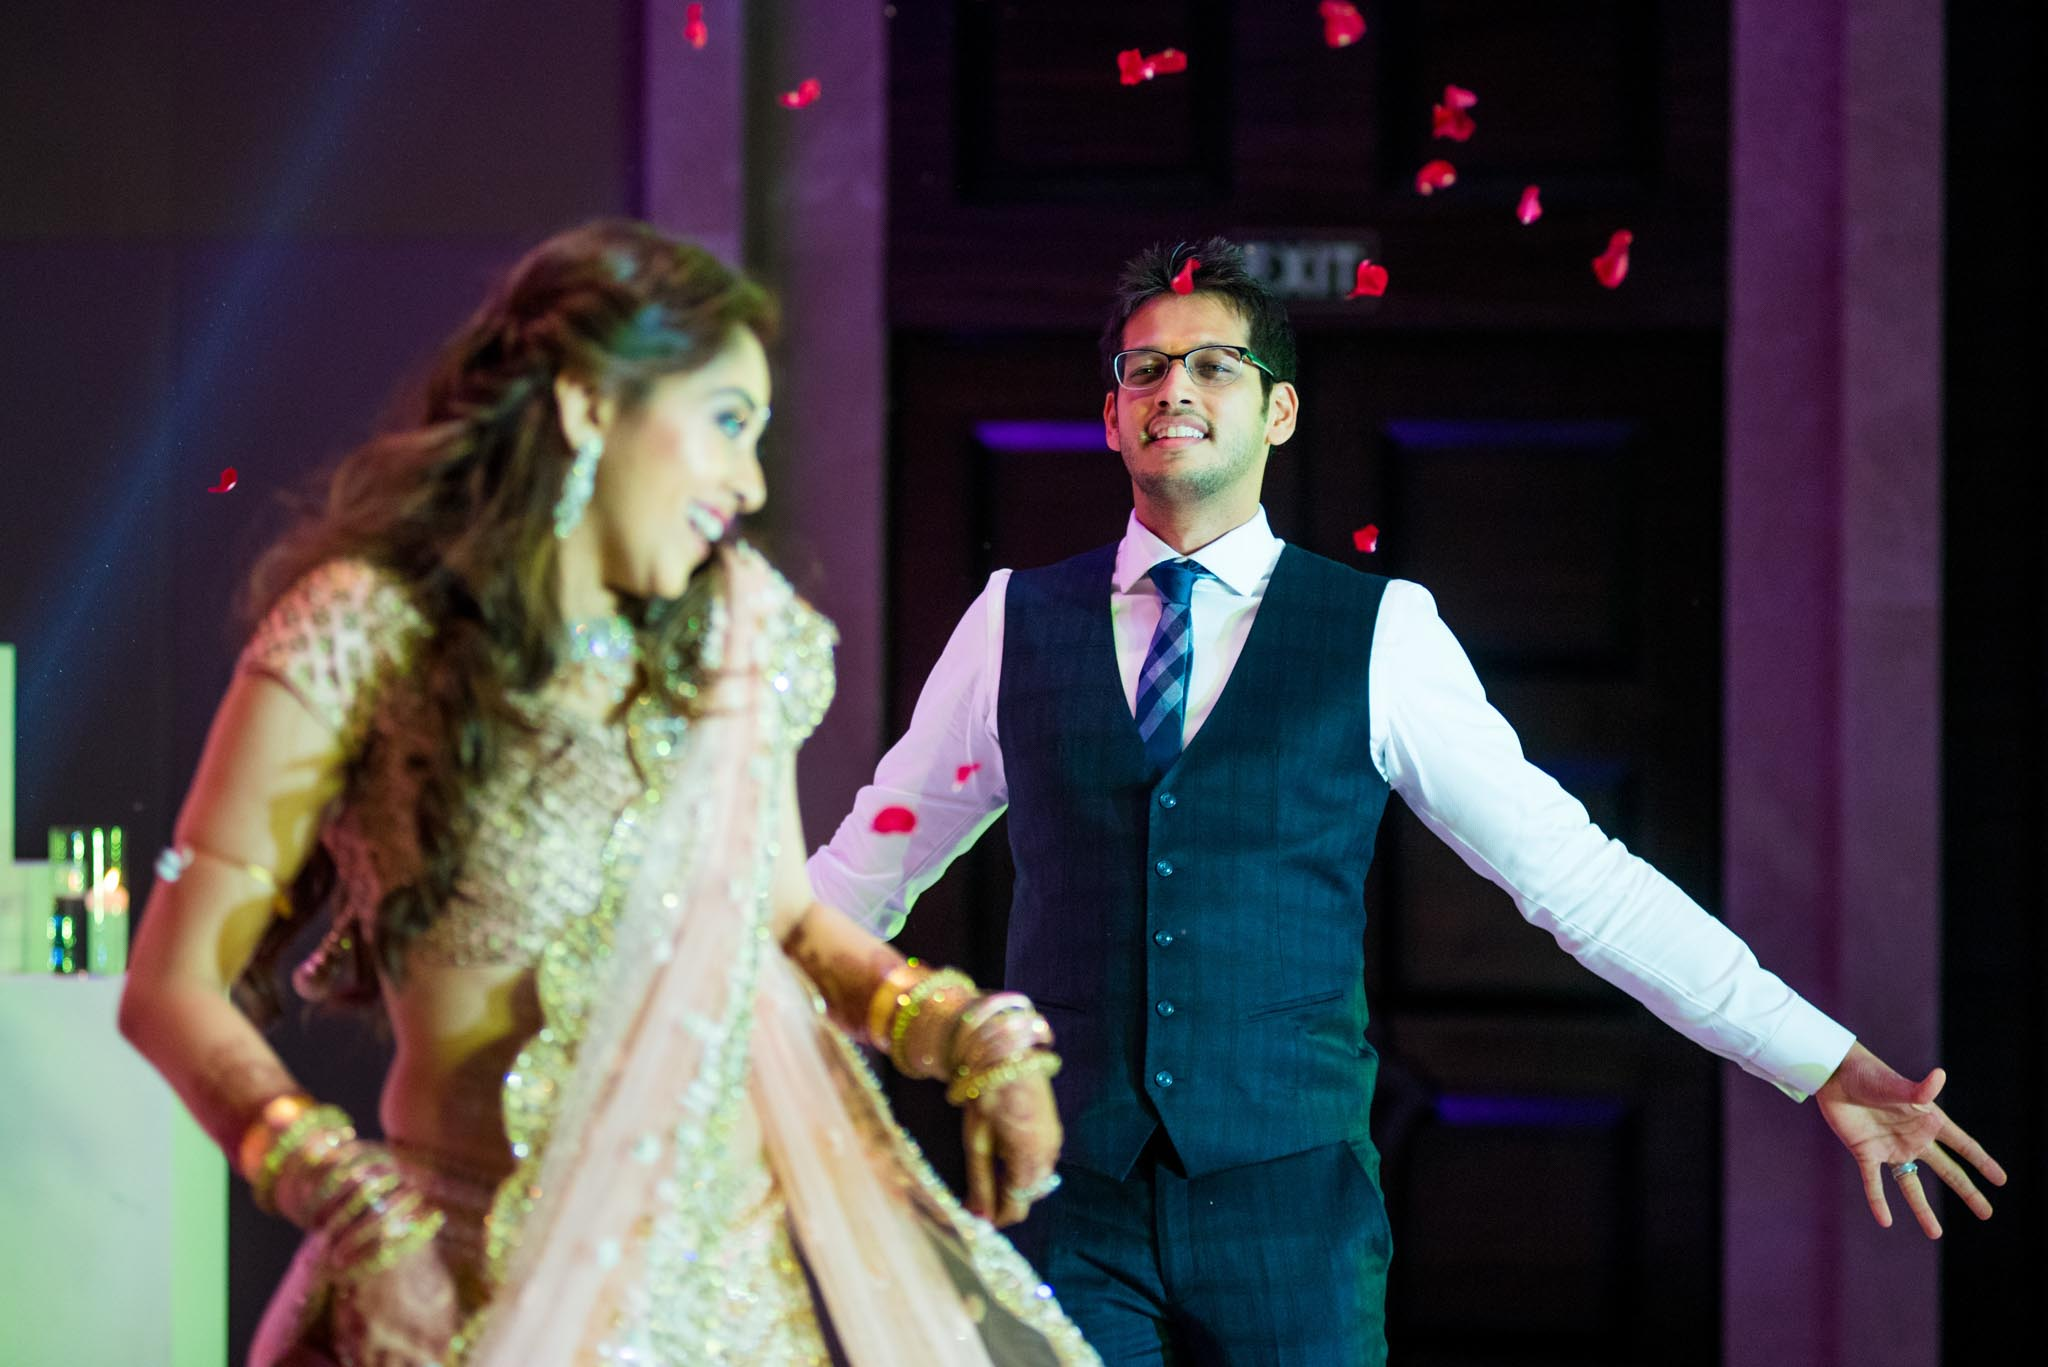 StRegis-Palladium-Mumbai-Candid-Wedding-Photography-64